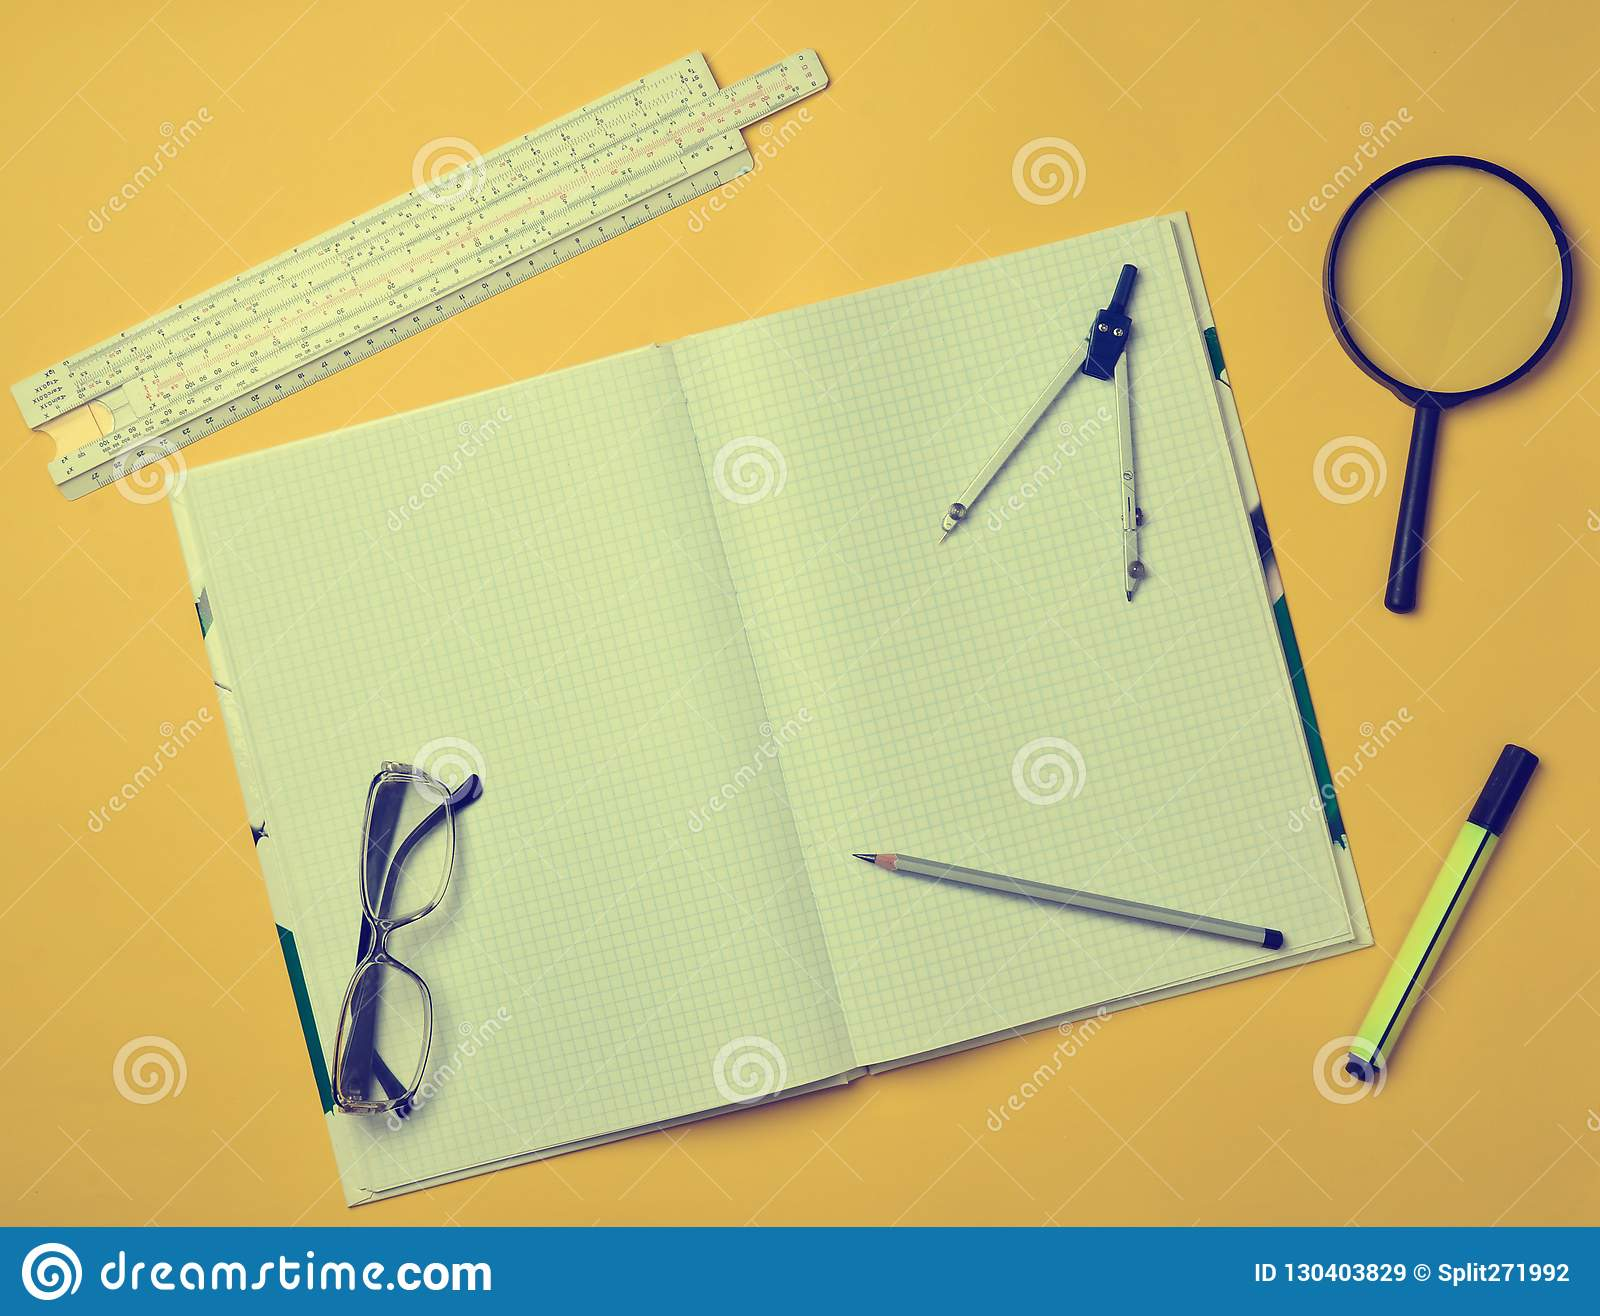 A Large Notebook For Notes And Drafting With Stationery Objects